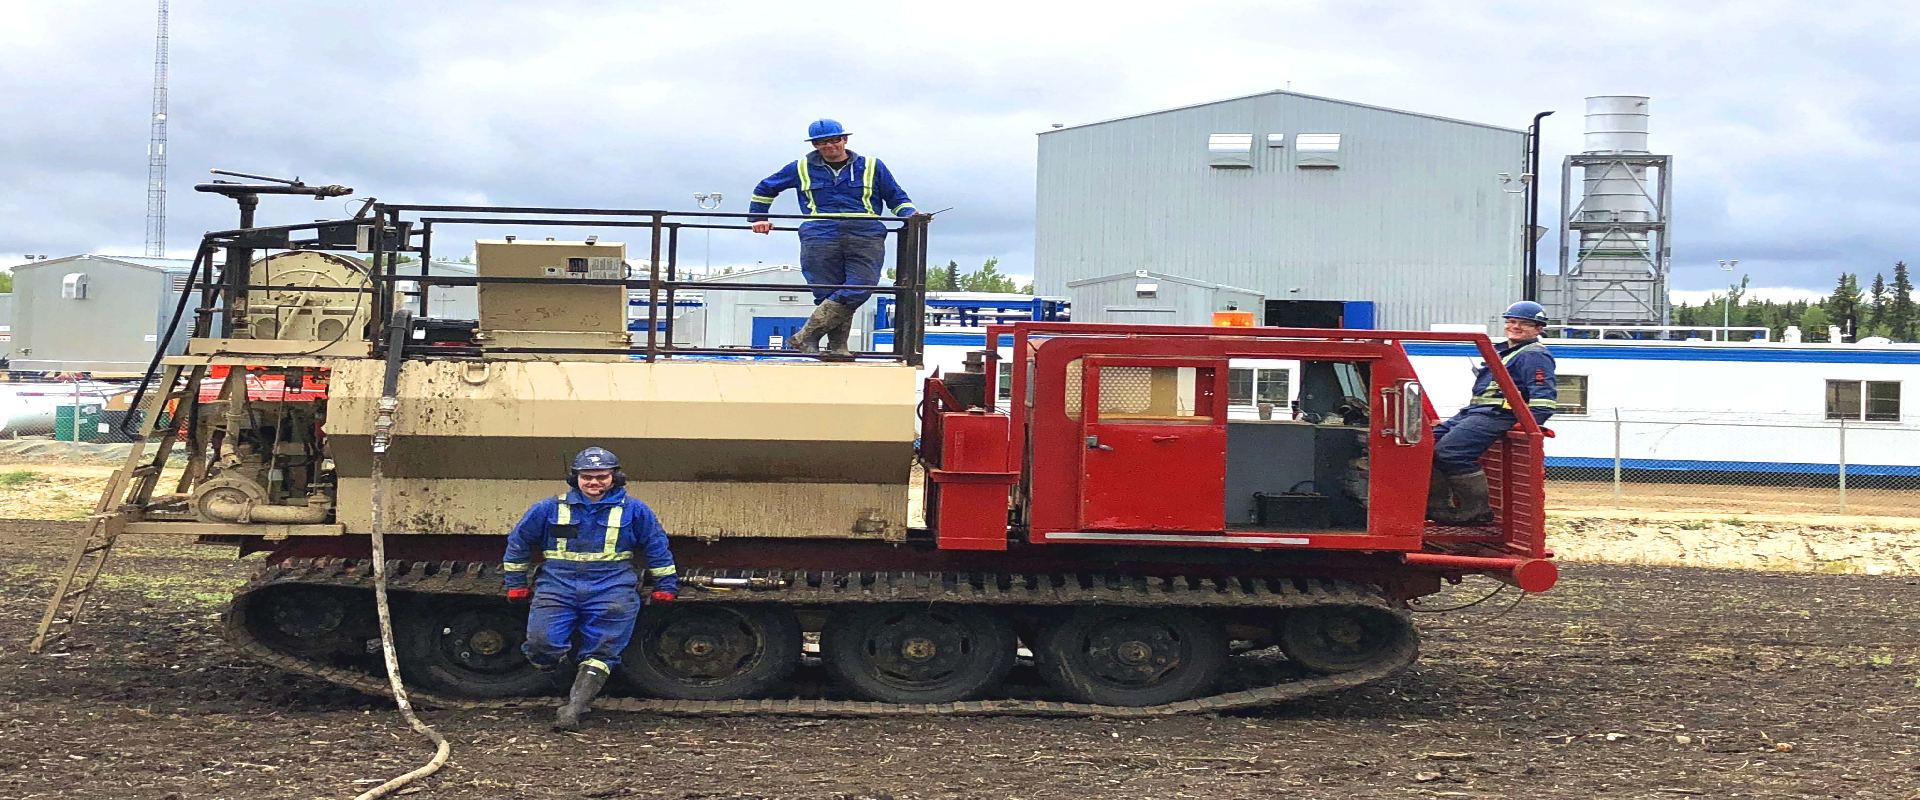 3 workers on hydroseeding equipments smiling